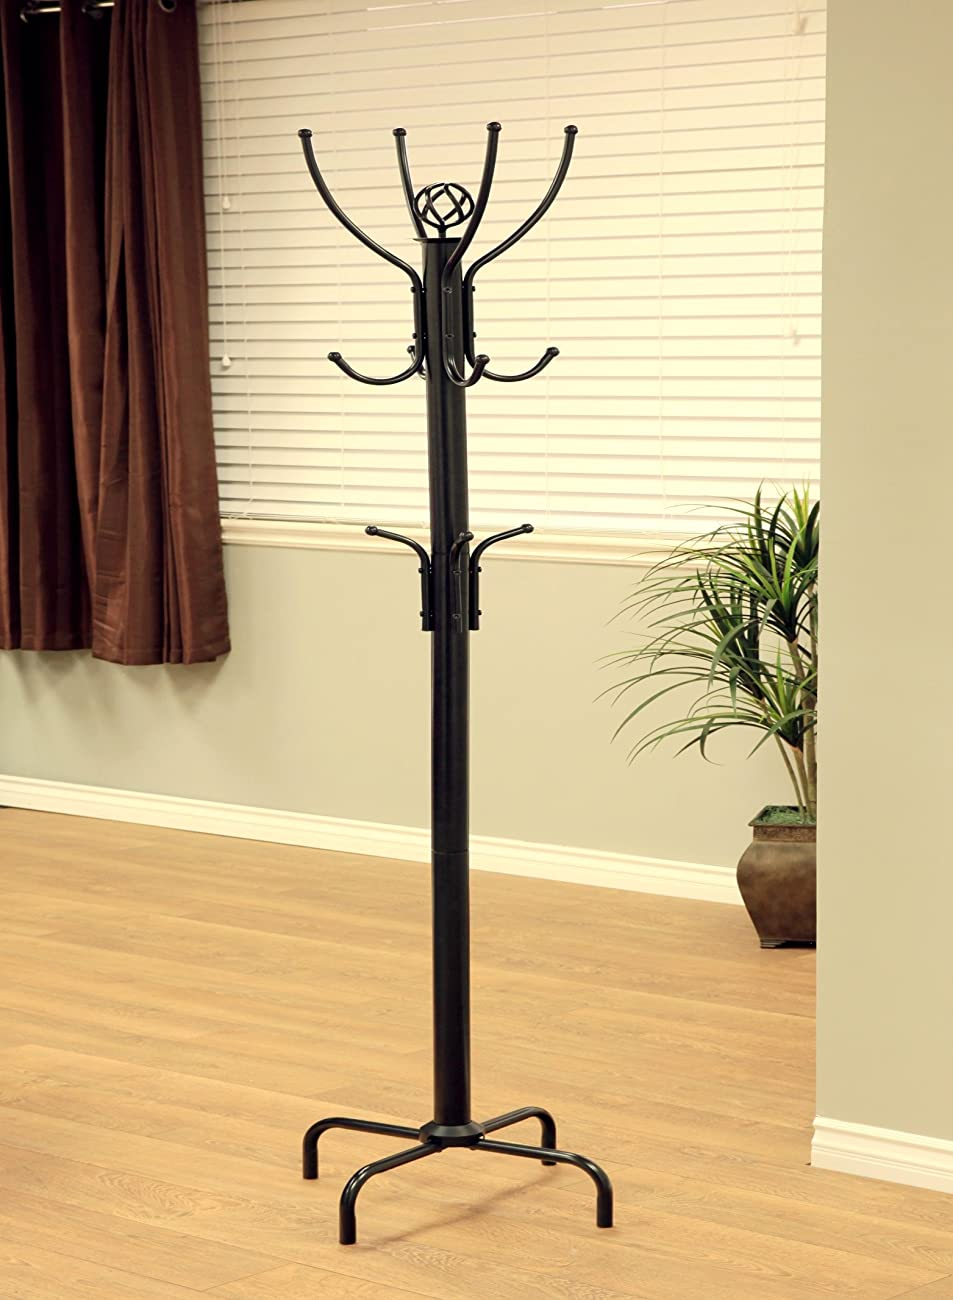 Frenchi Furniture Black Metal Coat Rack 12 Hooks